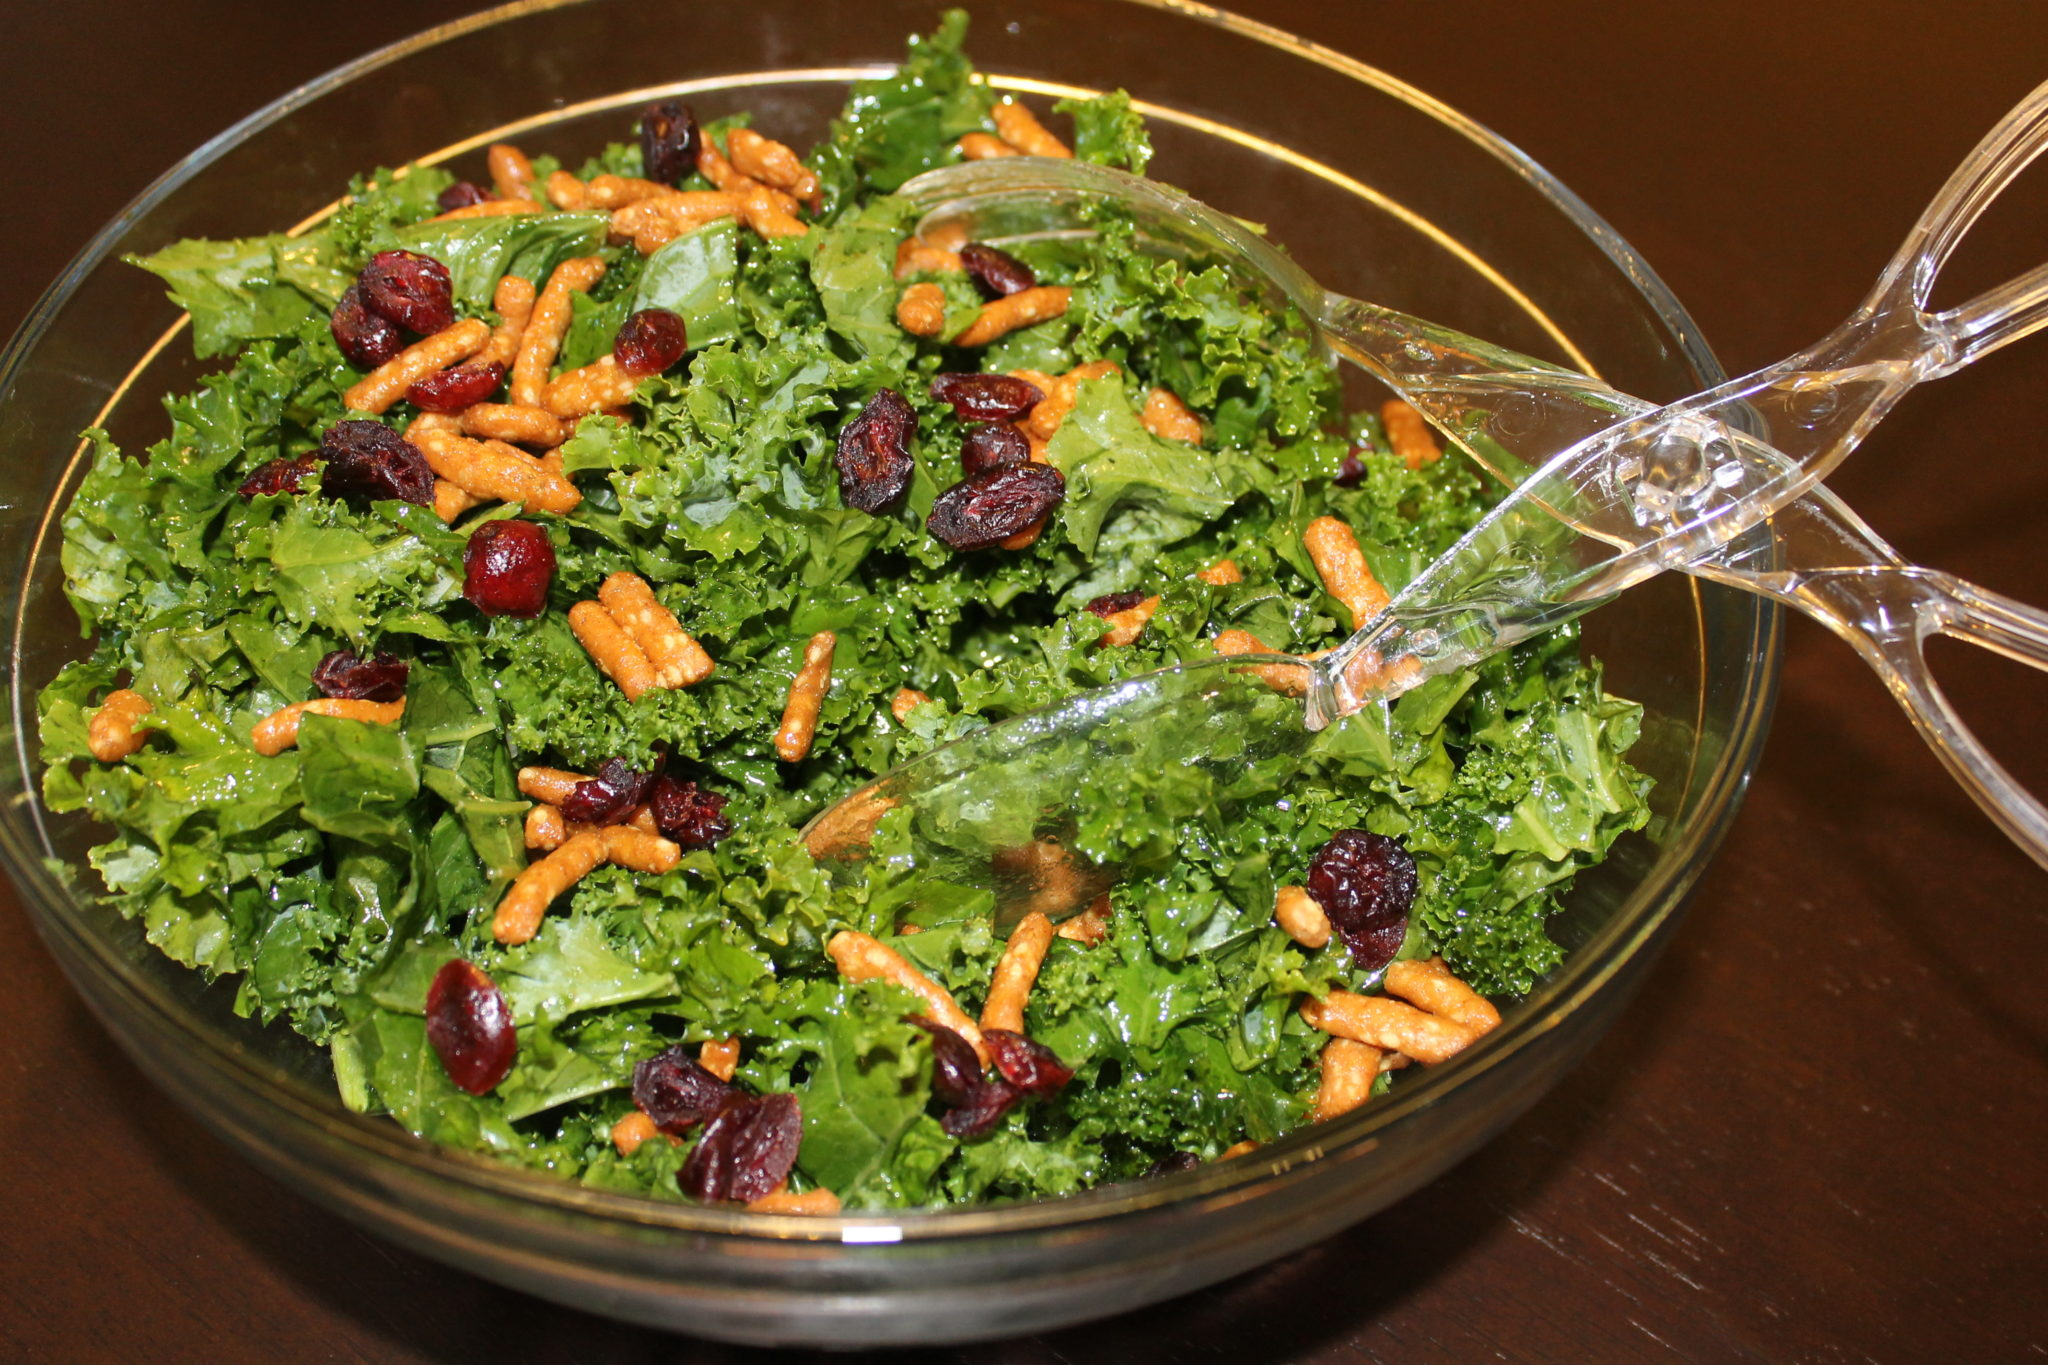 newmans own organics kale berry salad